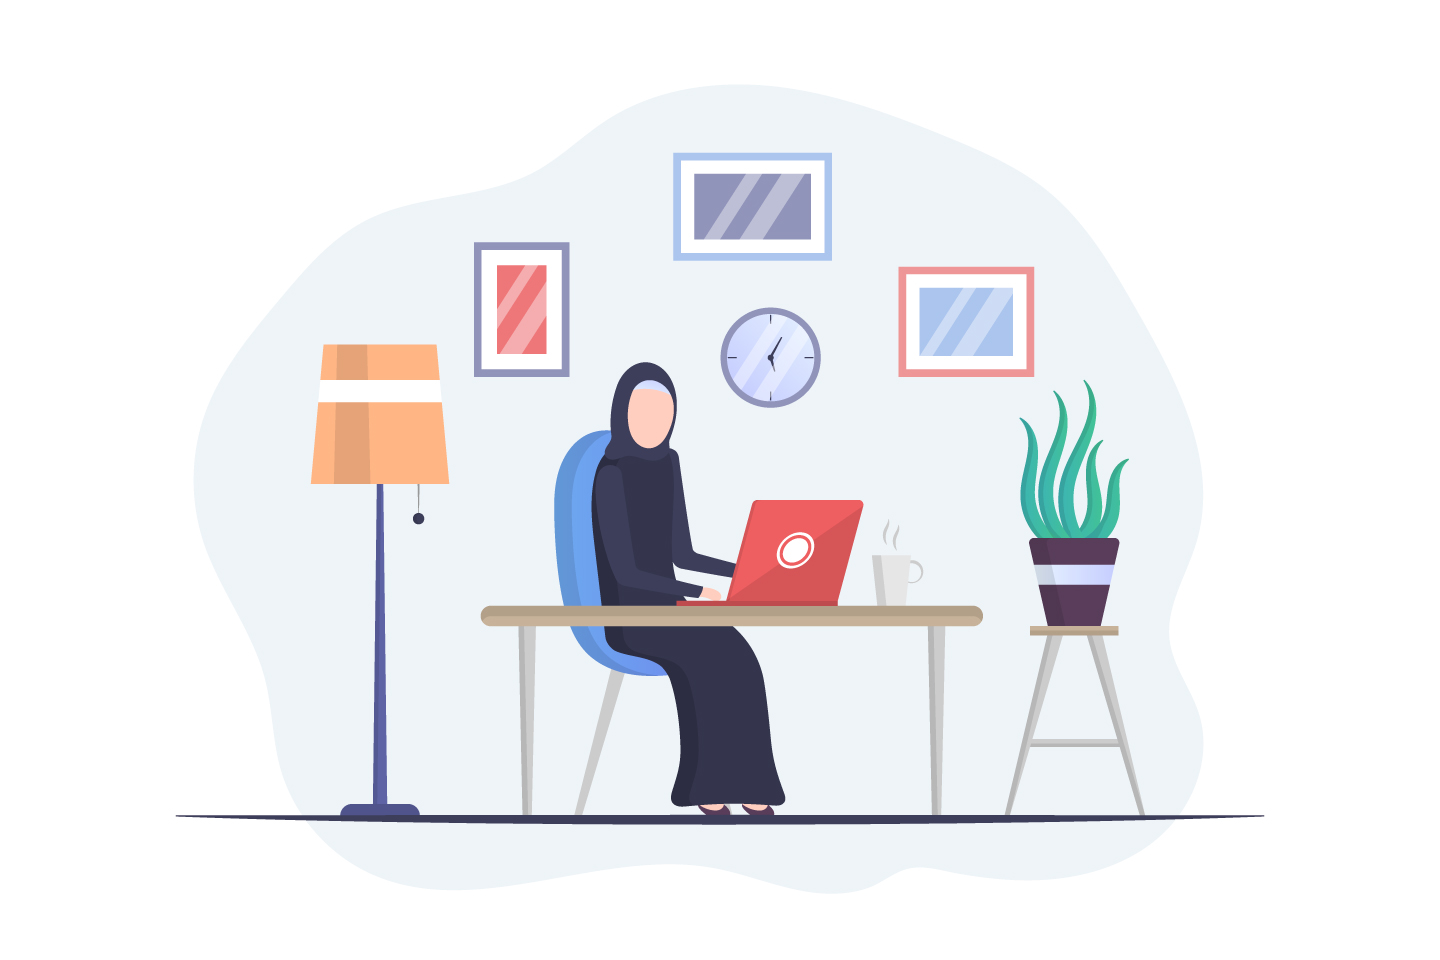 Muslim Business Woman in Traditional Clothing Working on Laptop